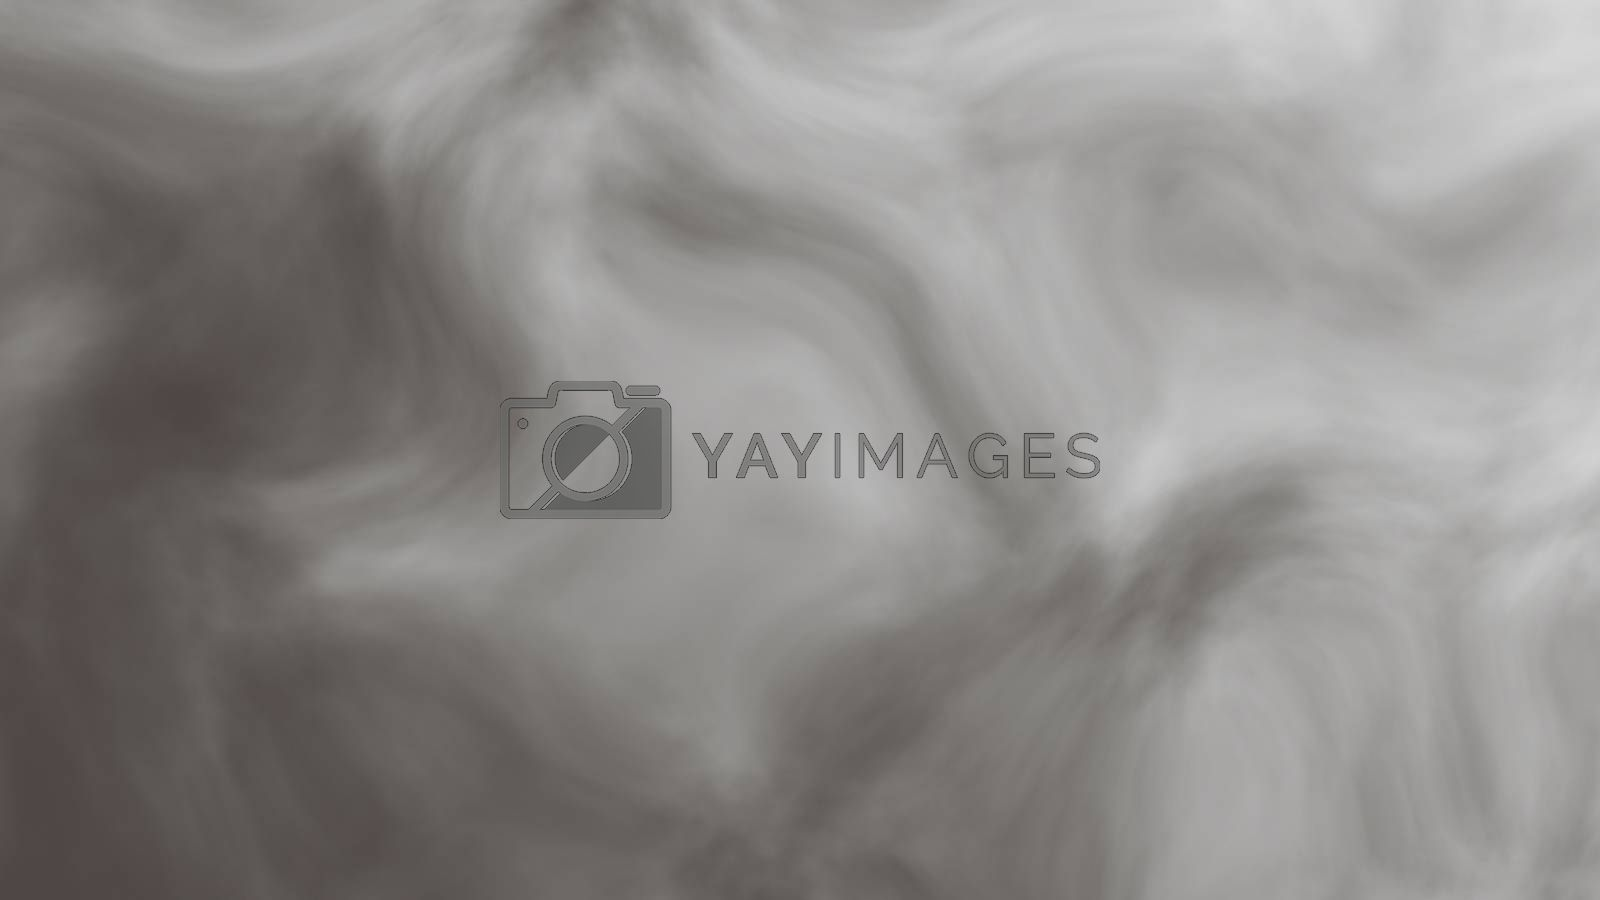 Black-and-white Background. Oil On Canvas. Dirty Abstract Drawing. Grunge Ink Splash. Black And White Shades. Oil Painting. Dirty Textile Design. Grayscale Background.